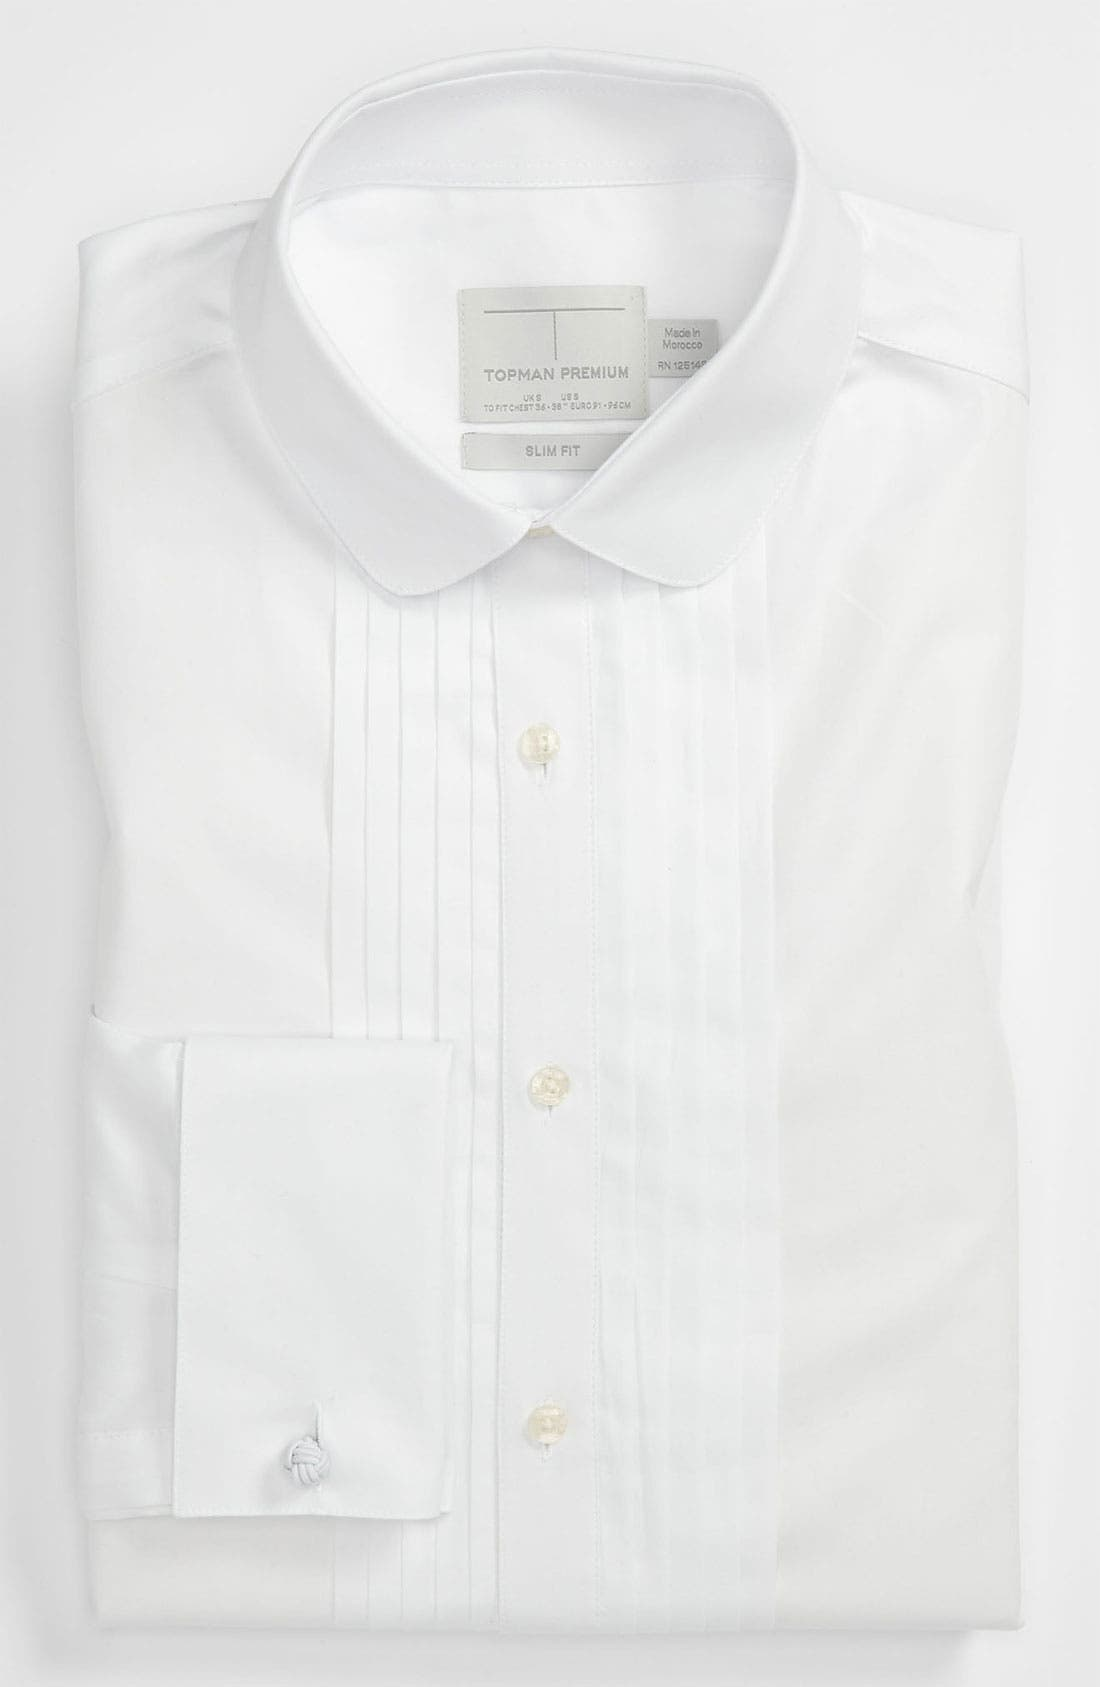 Main Image - Topman 'Premium' Slim Fit Dress Shirt